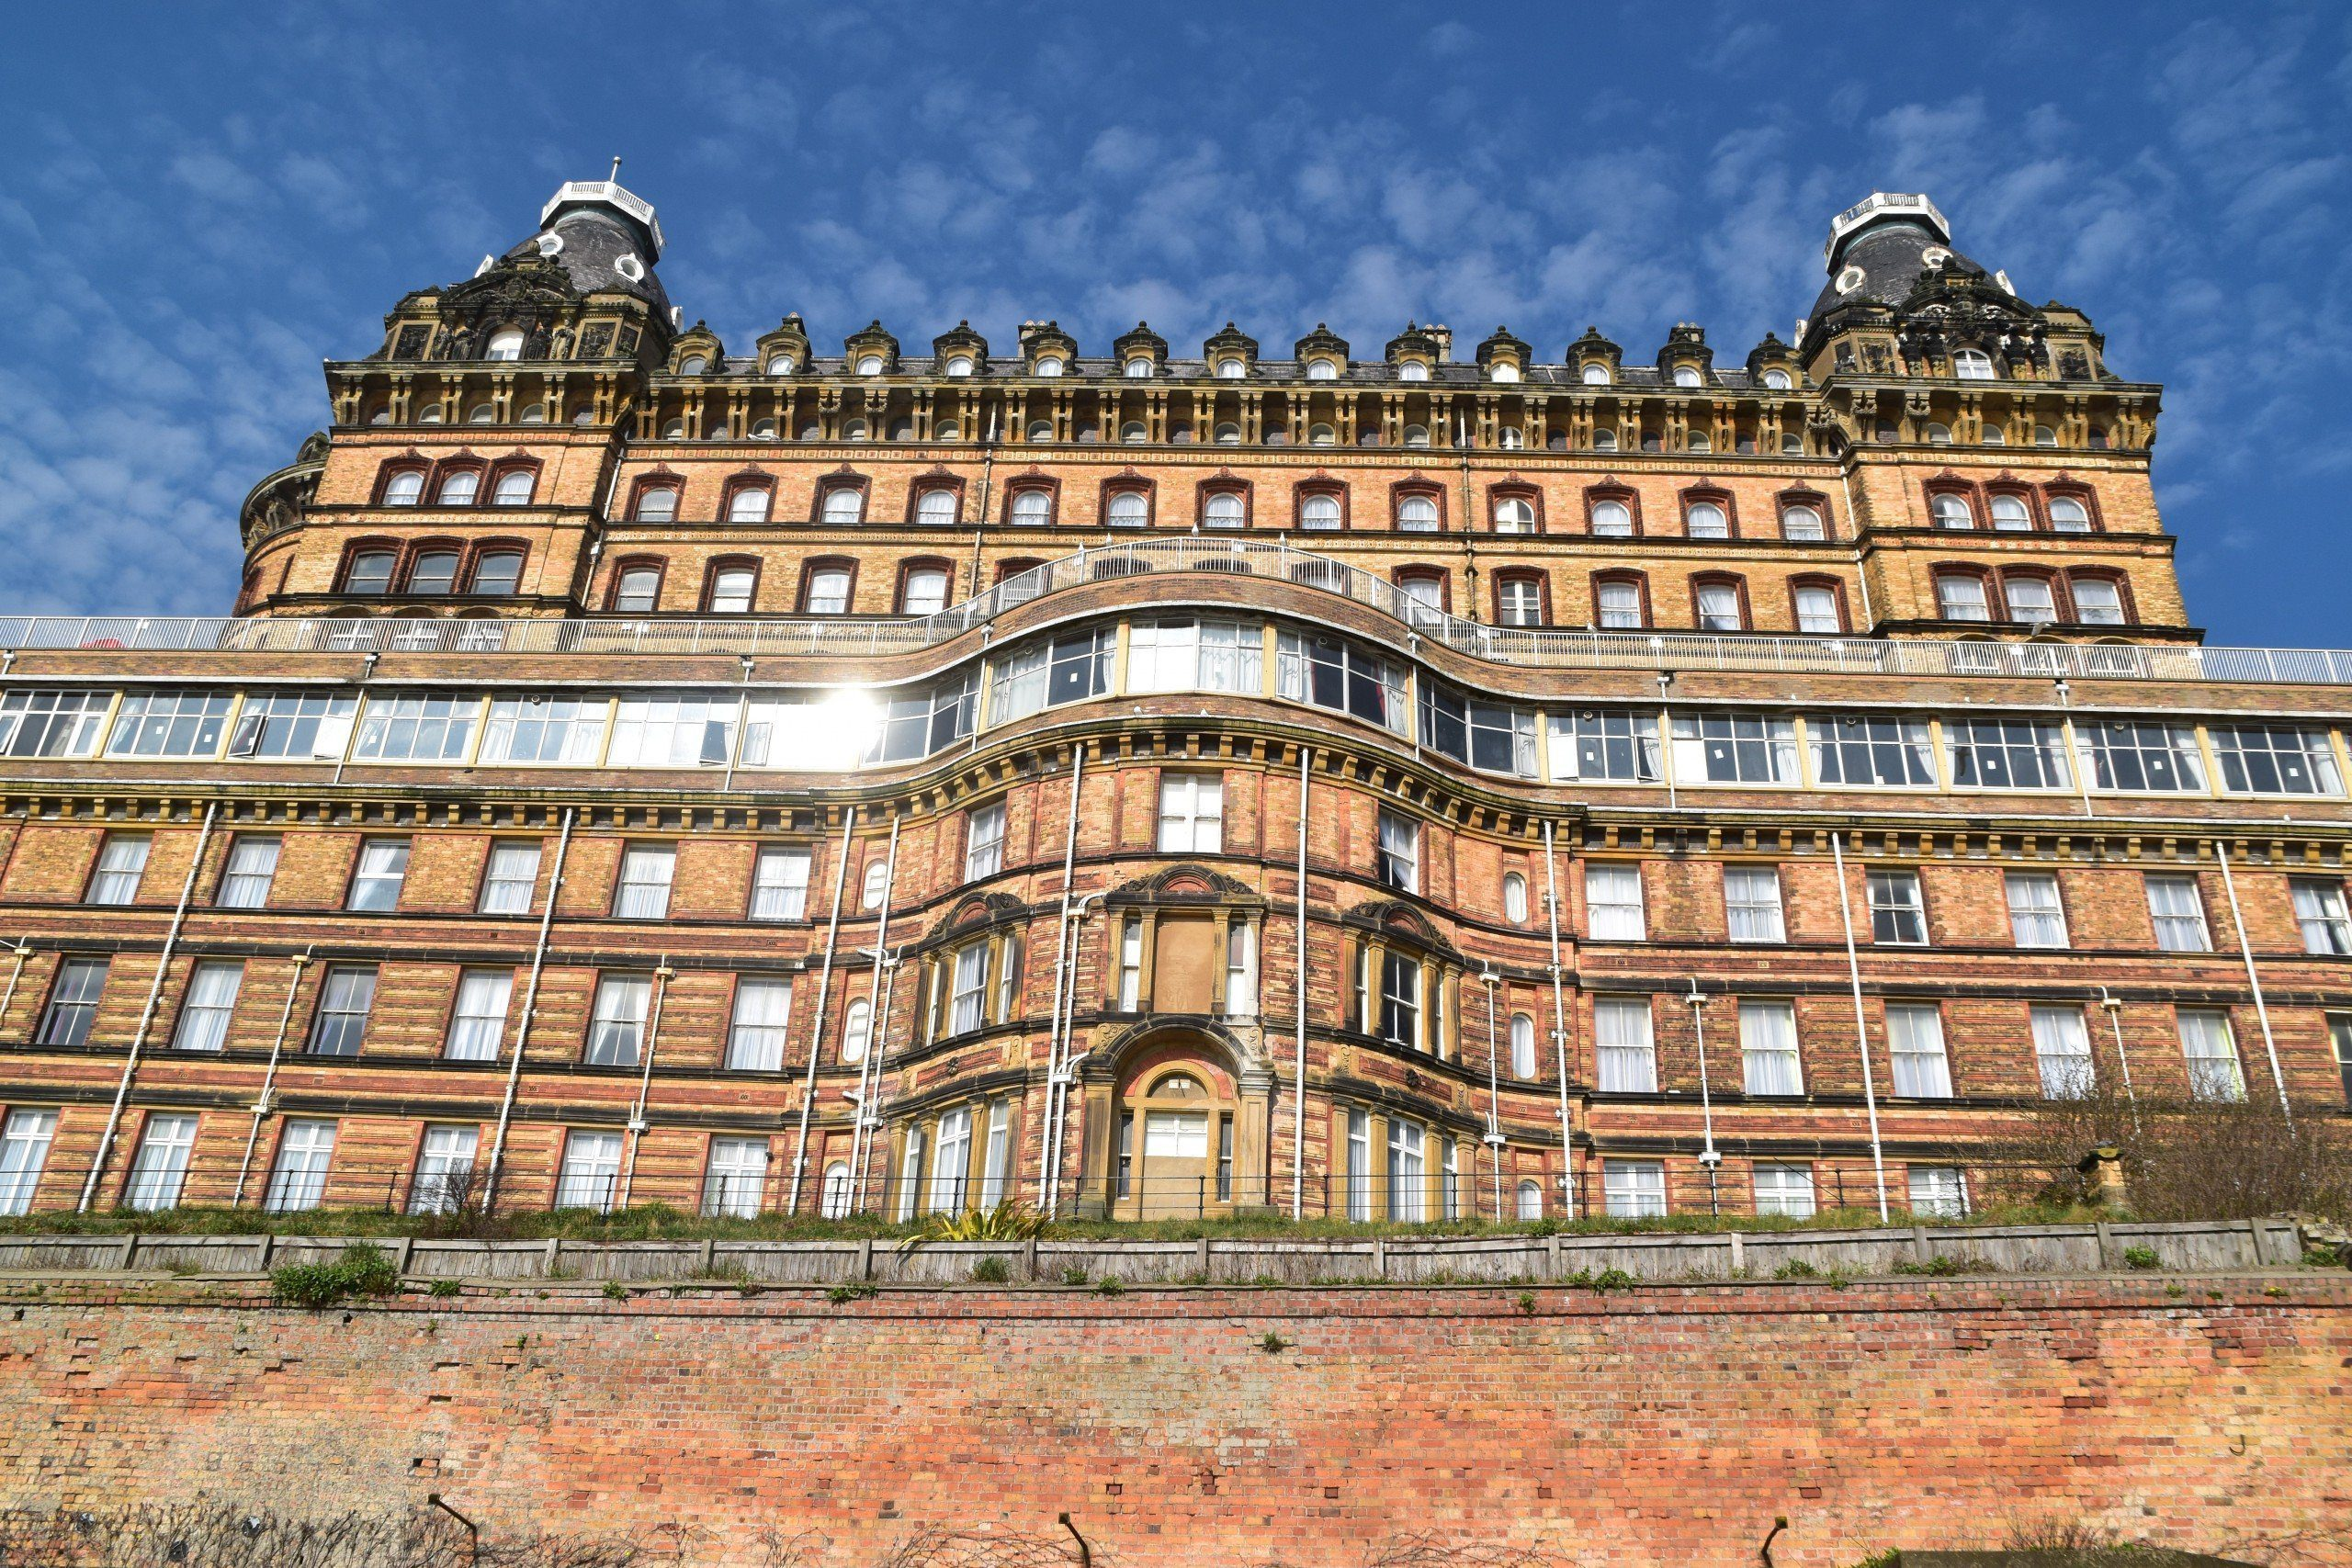 Facade of the Scarborough Grand Hotel with windows glinting in the sun